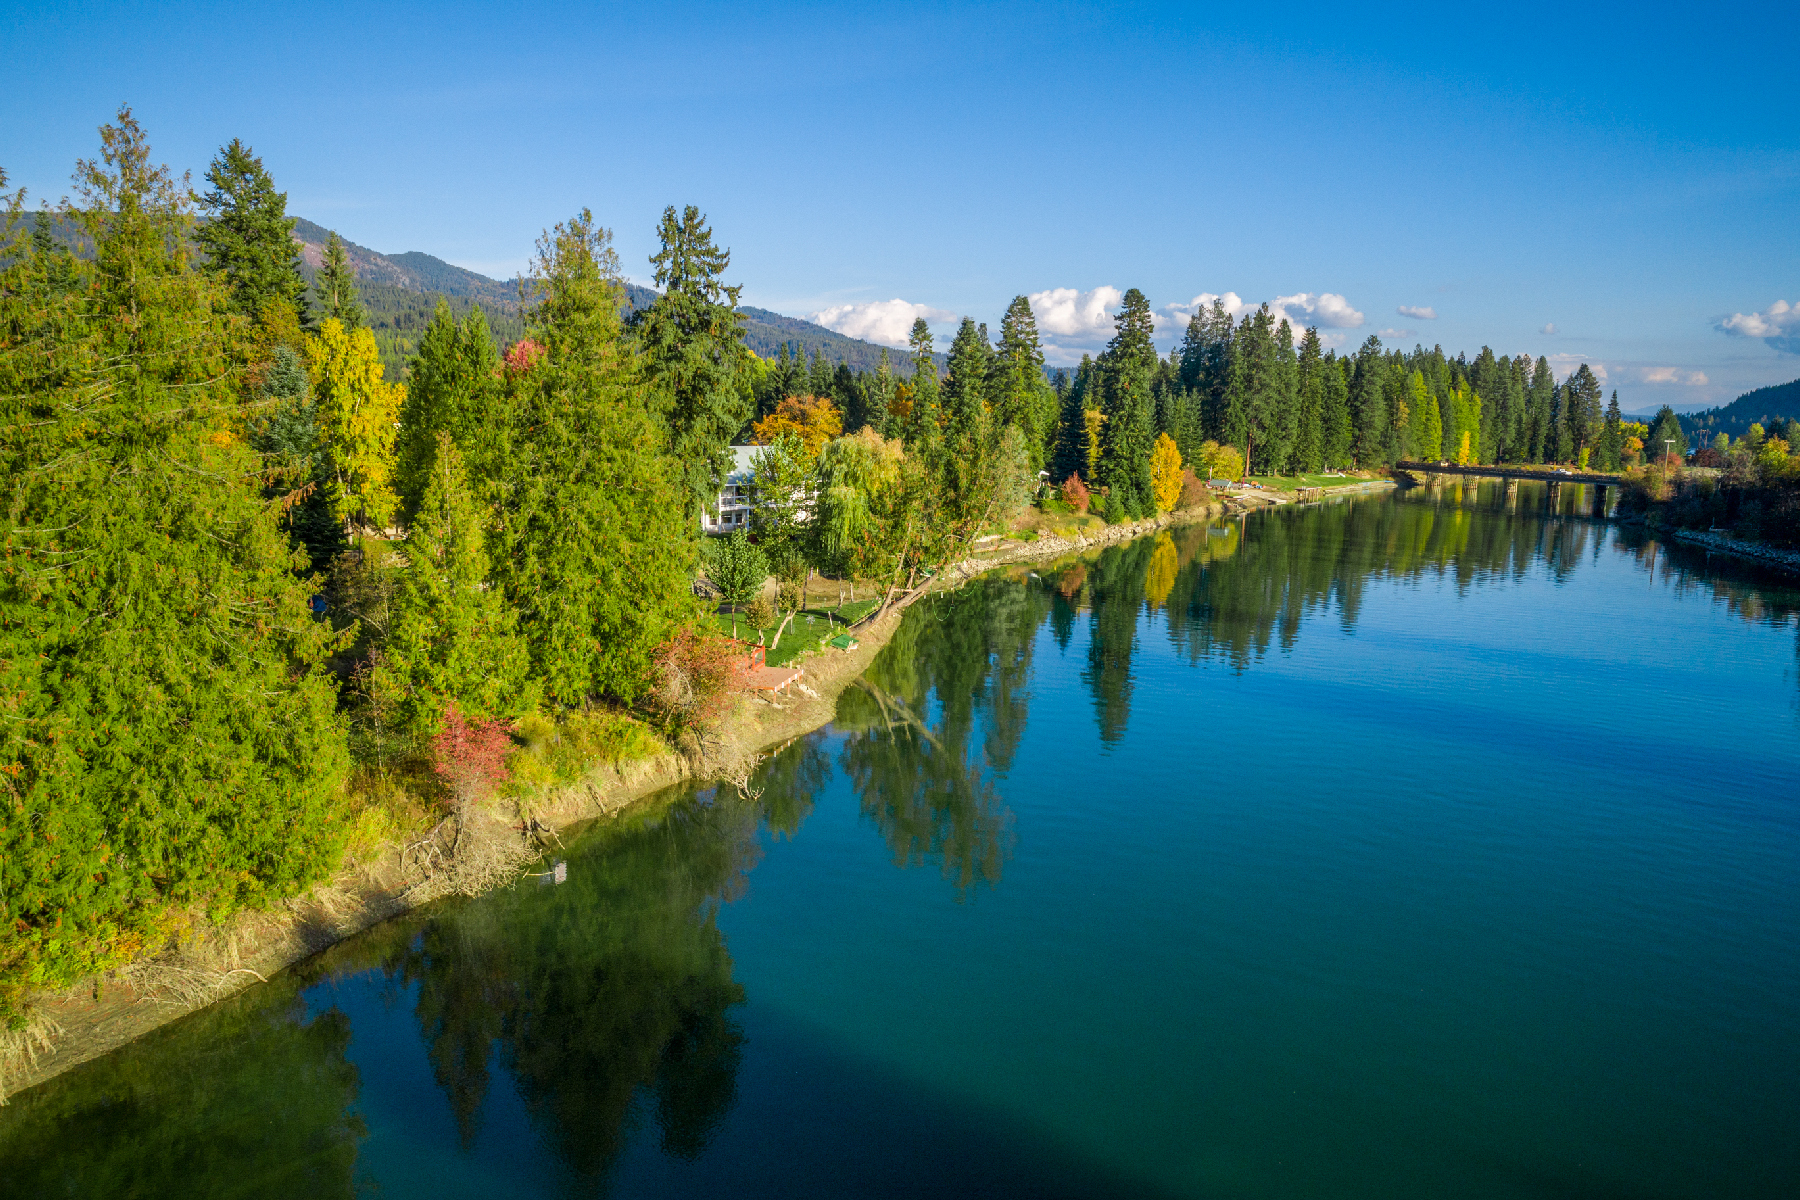 Land for Sale at Large Waterfront Private Parcel 306 Rivers End Dr Parcel 2 Priest River, Idaho 83856 United States